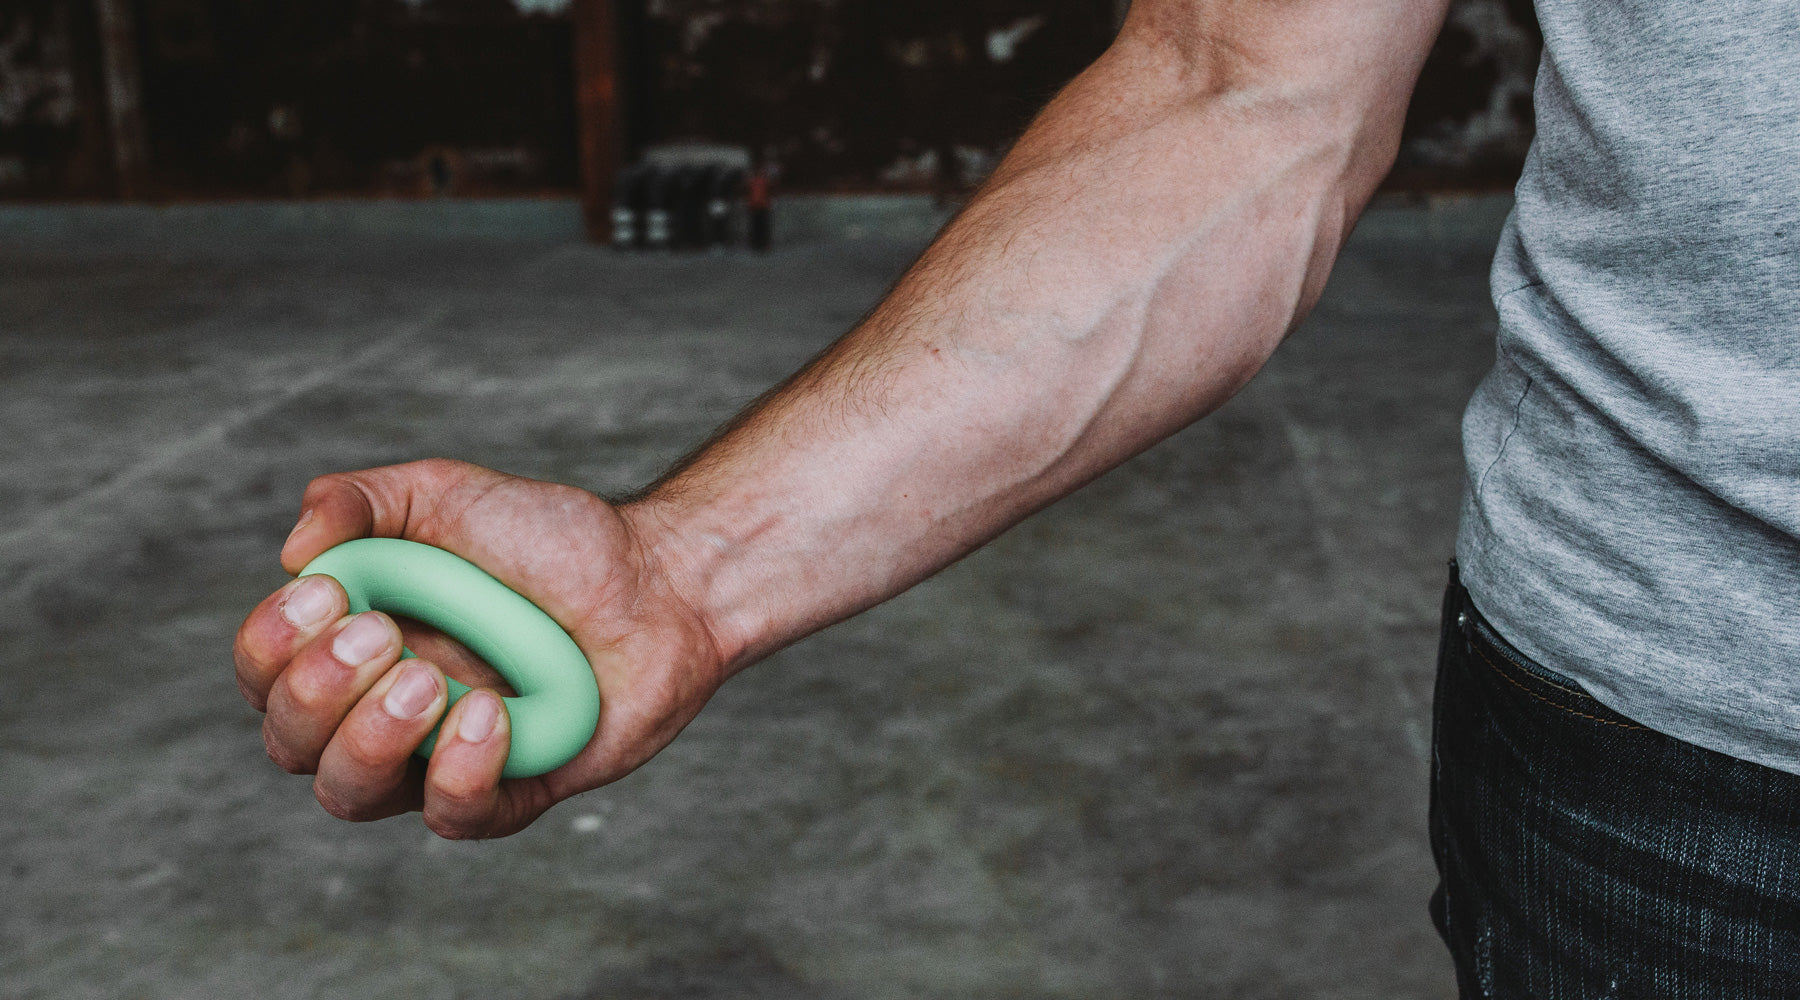 A climber trains with the so ill strength hand trainer